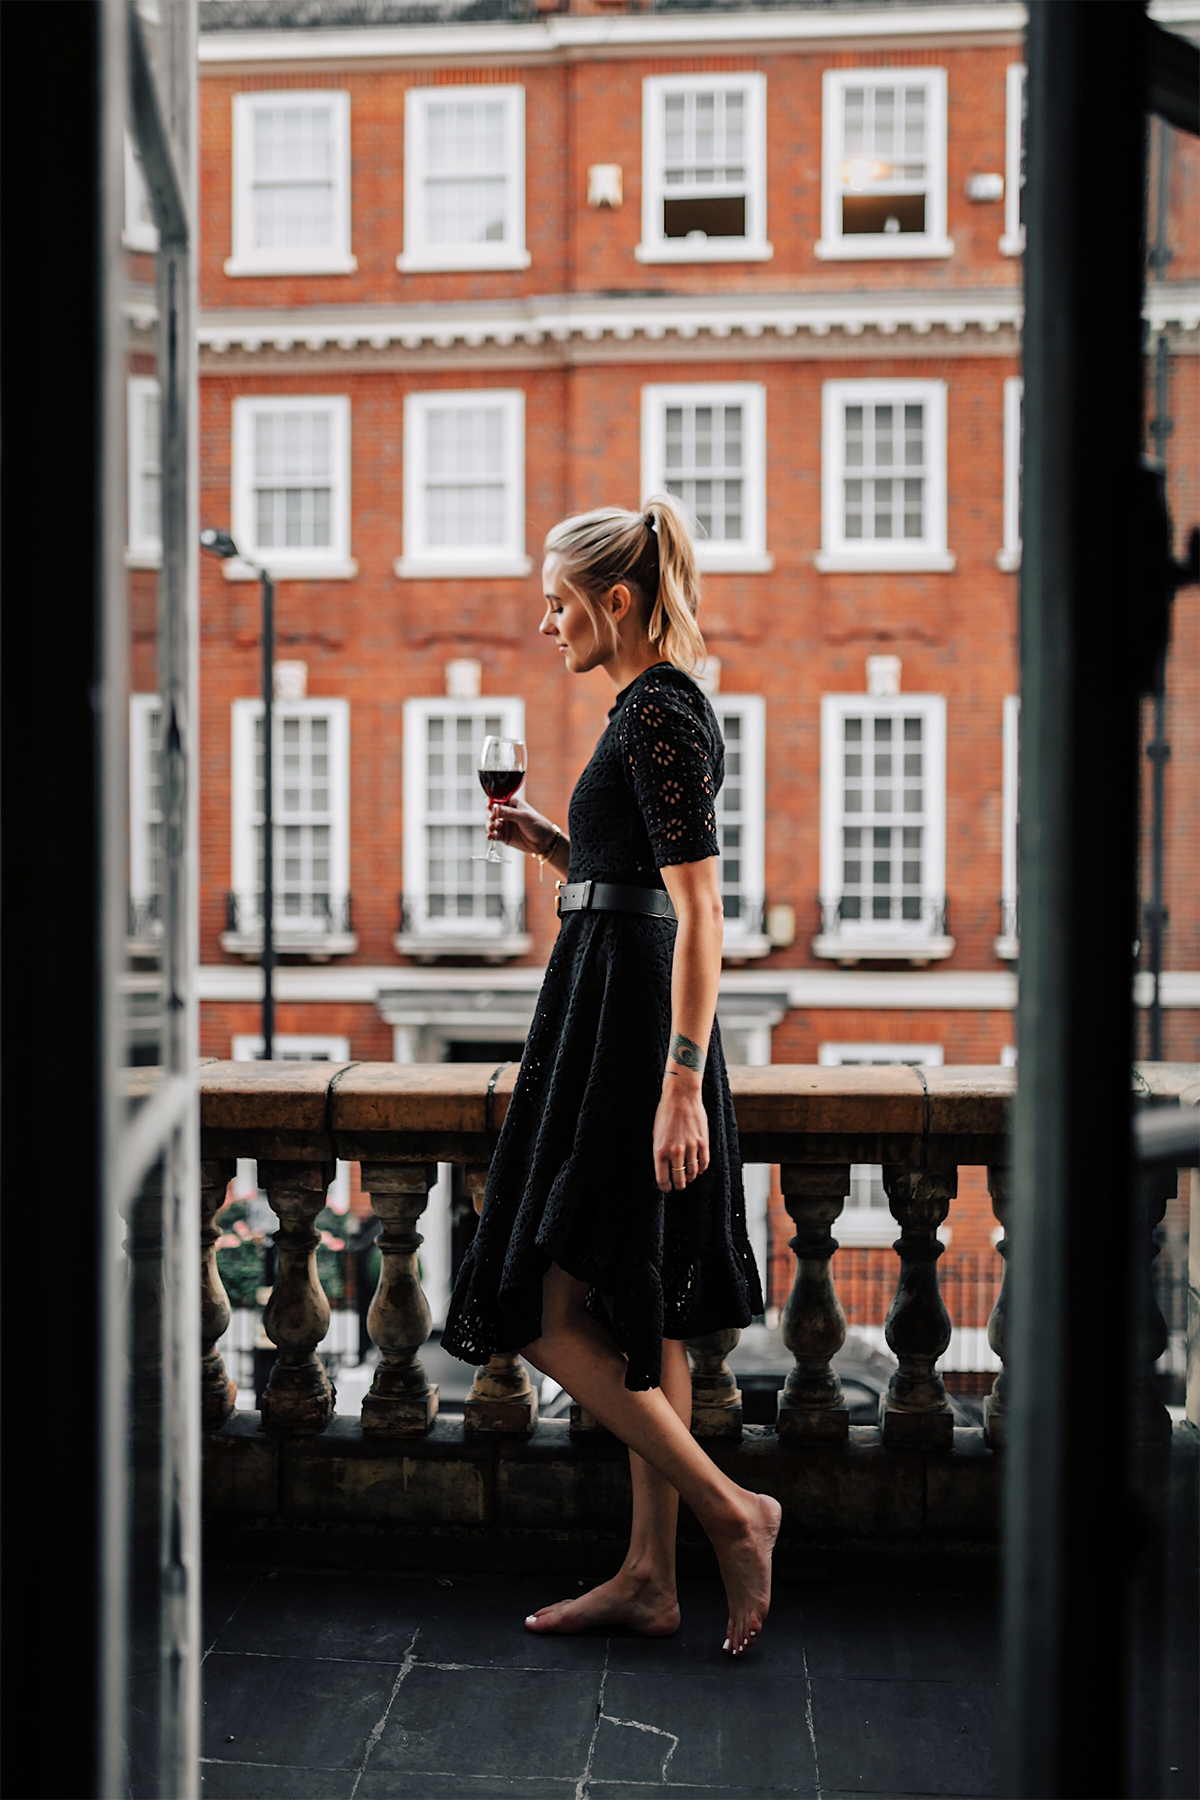 Blonde Women Wearing Black Lace Dress on London Balcony